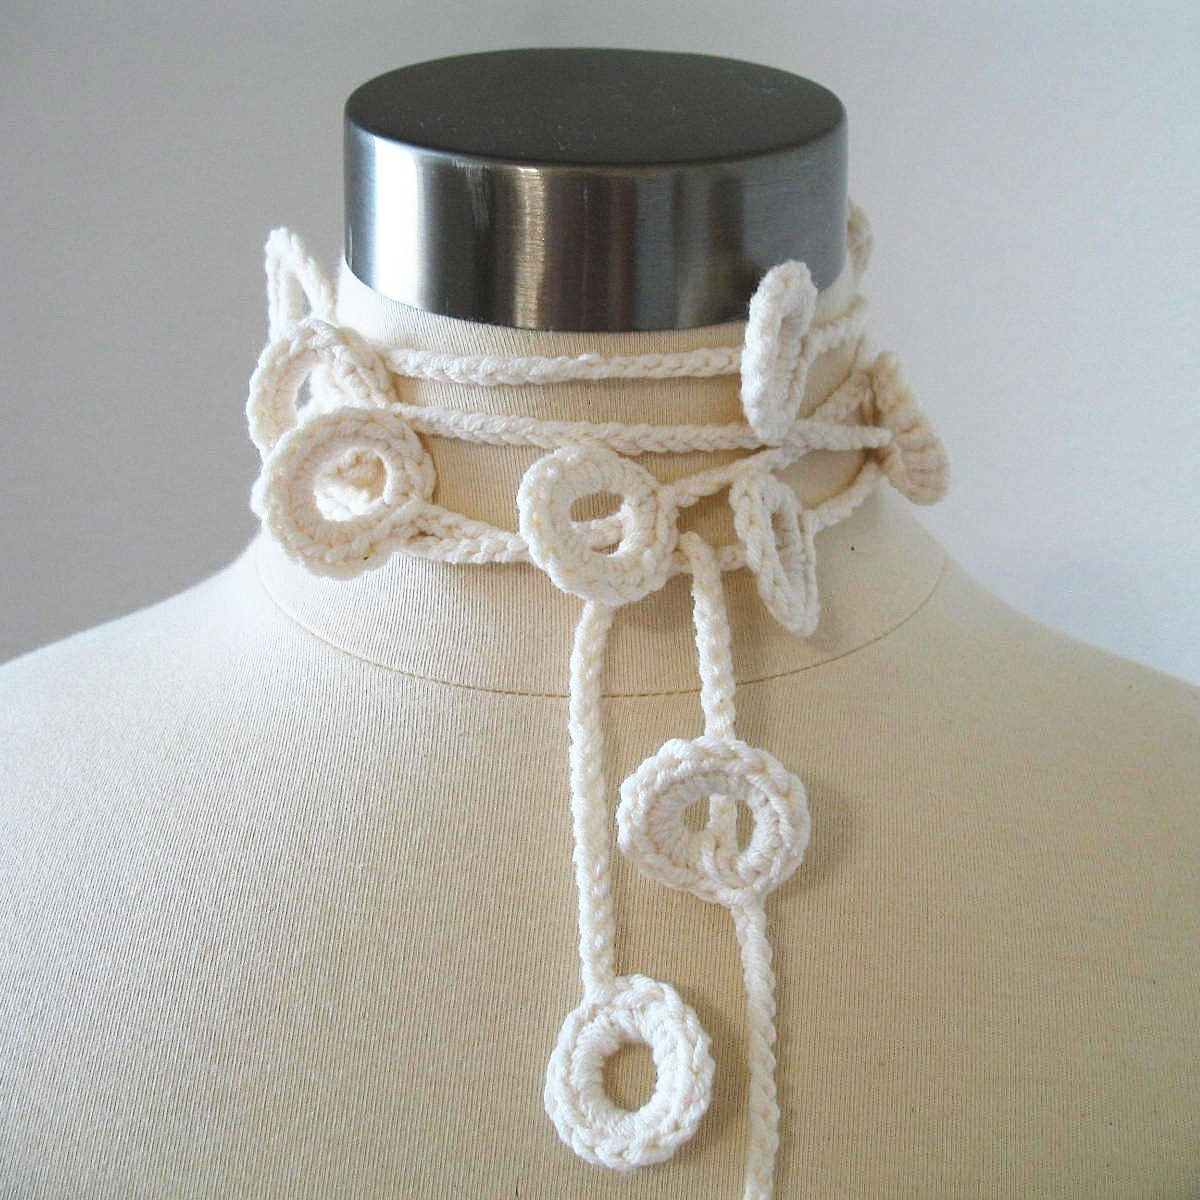 Loopy Loops Lariat - Women Whimsical, Delicate, Light, All Season, Spring, Summer, Fiber Jewelry in Vanilla Cream